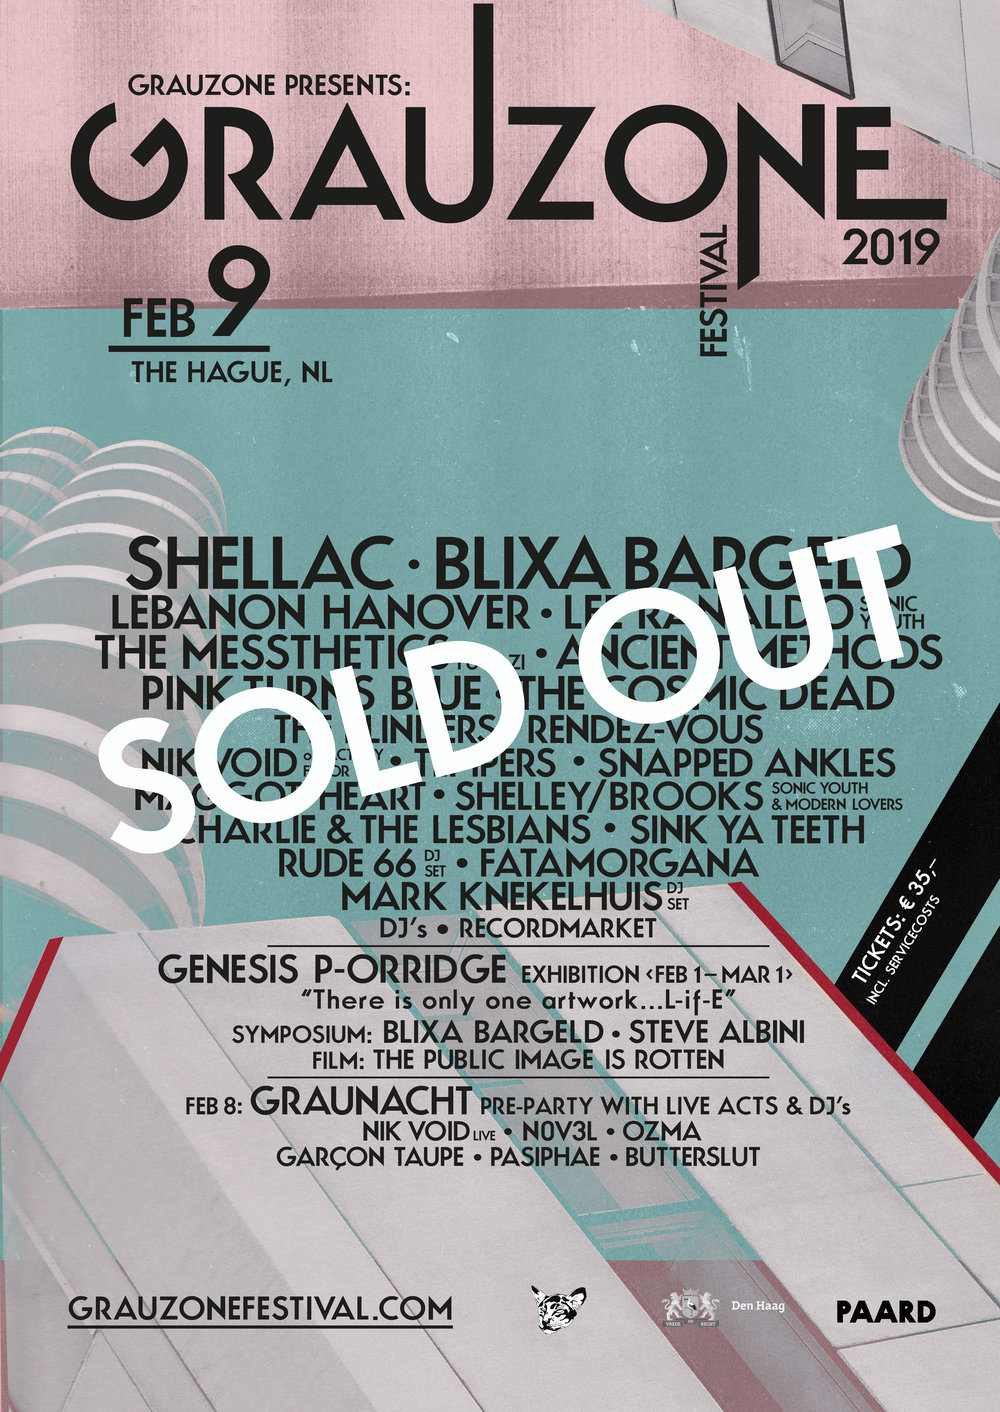 grauzone_2019_SOLD_OUT.jpg